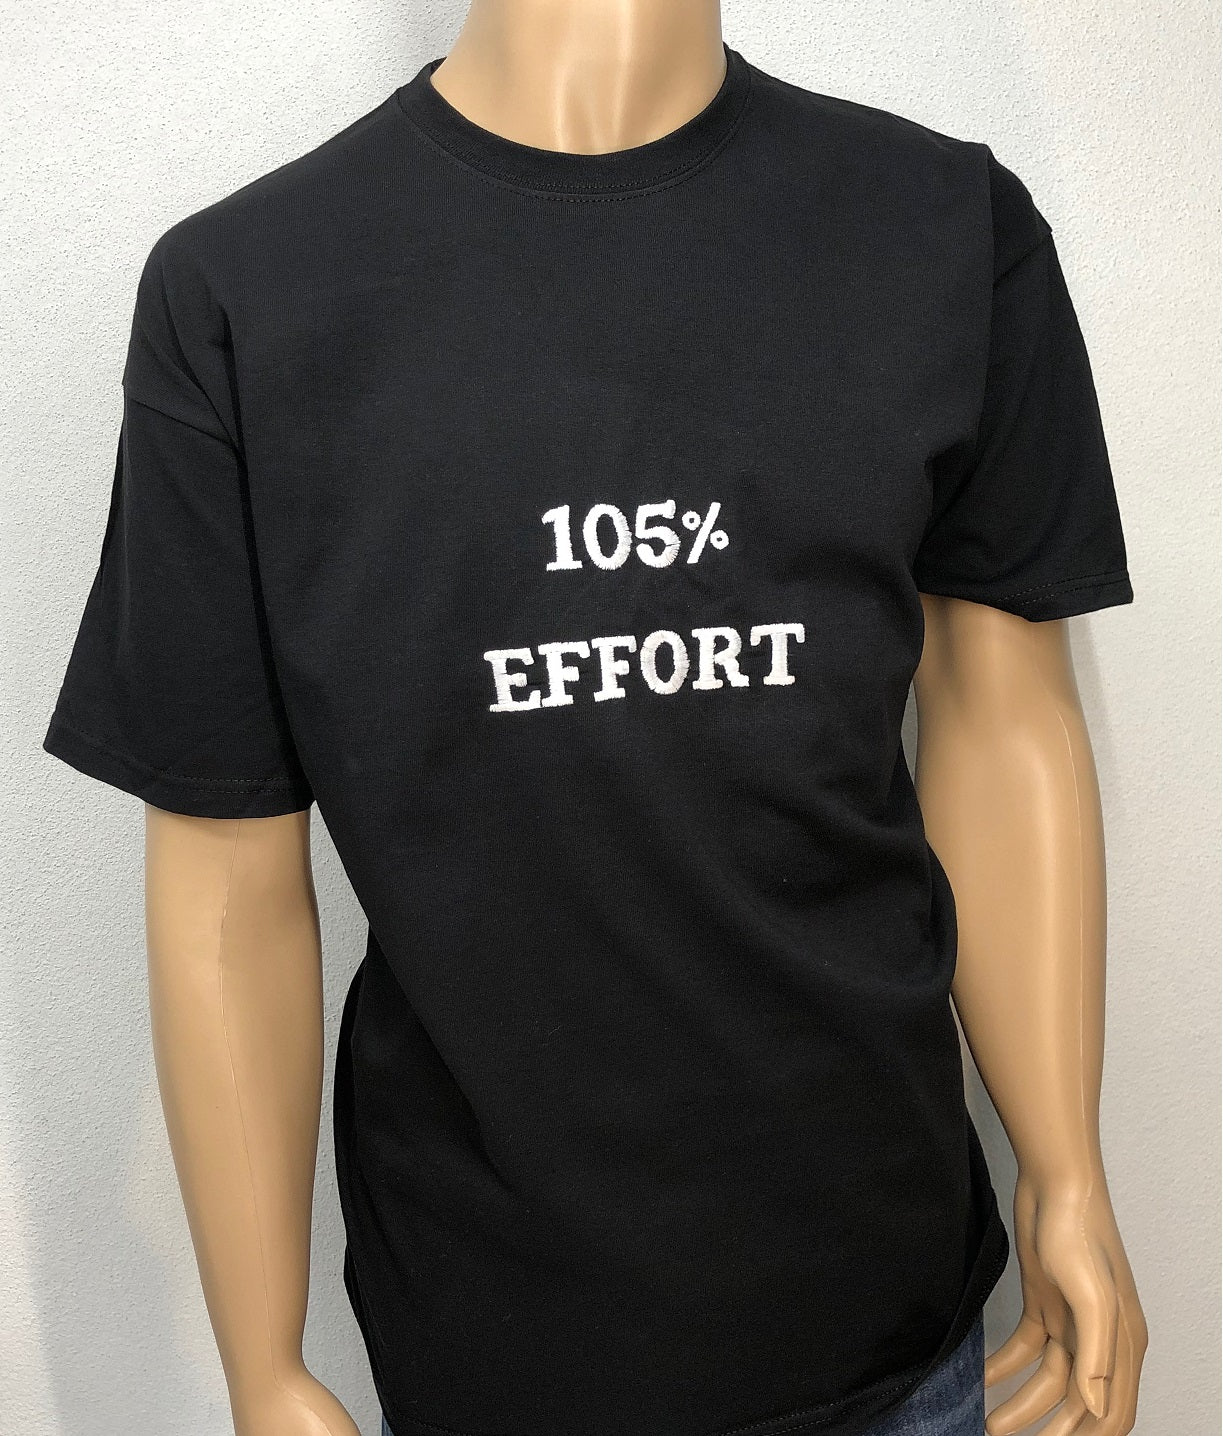 105% effort 👕 Embroidered text T-shirt